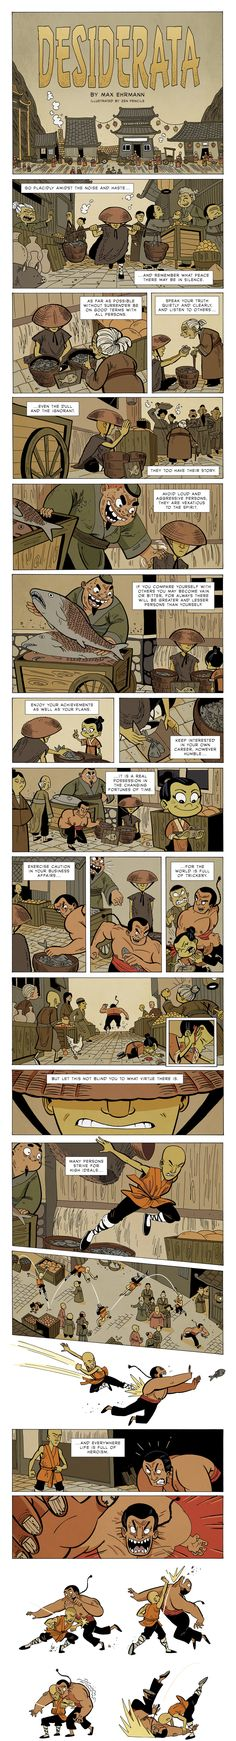 This Zen Comic Is Full of Timeless Life Lessons http://www.cs.columbia.edu/~gongsu/desiderata_textonly.html